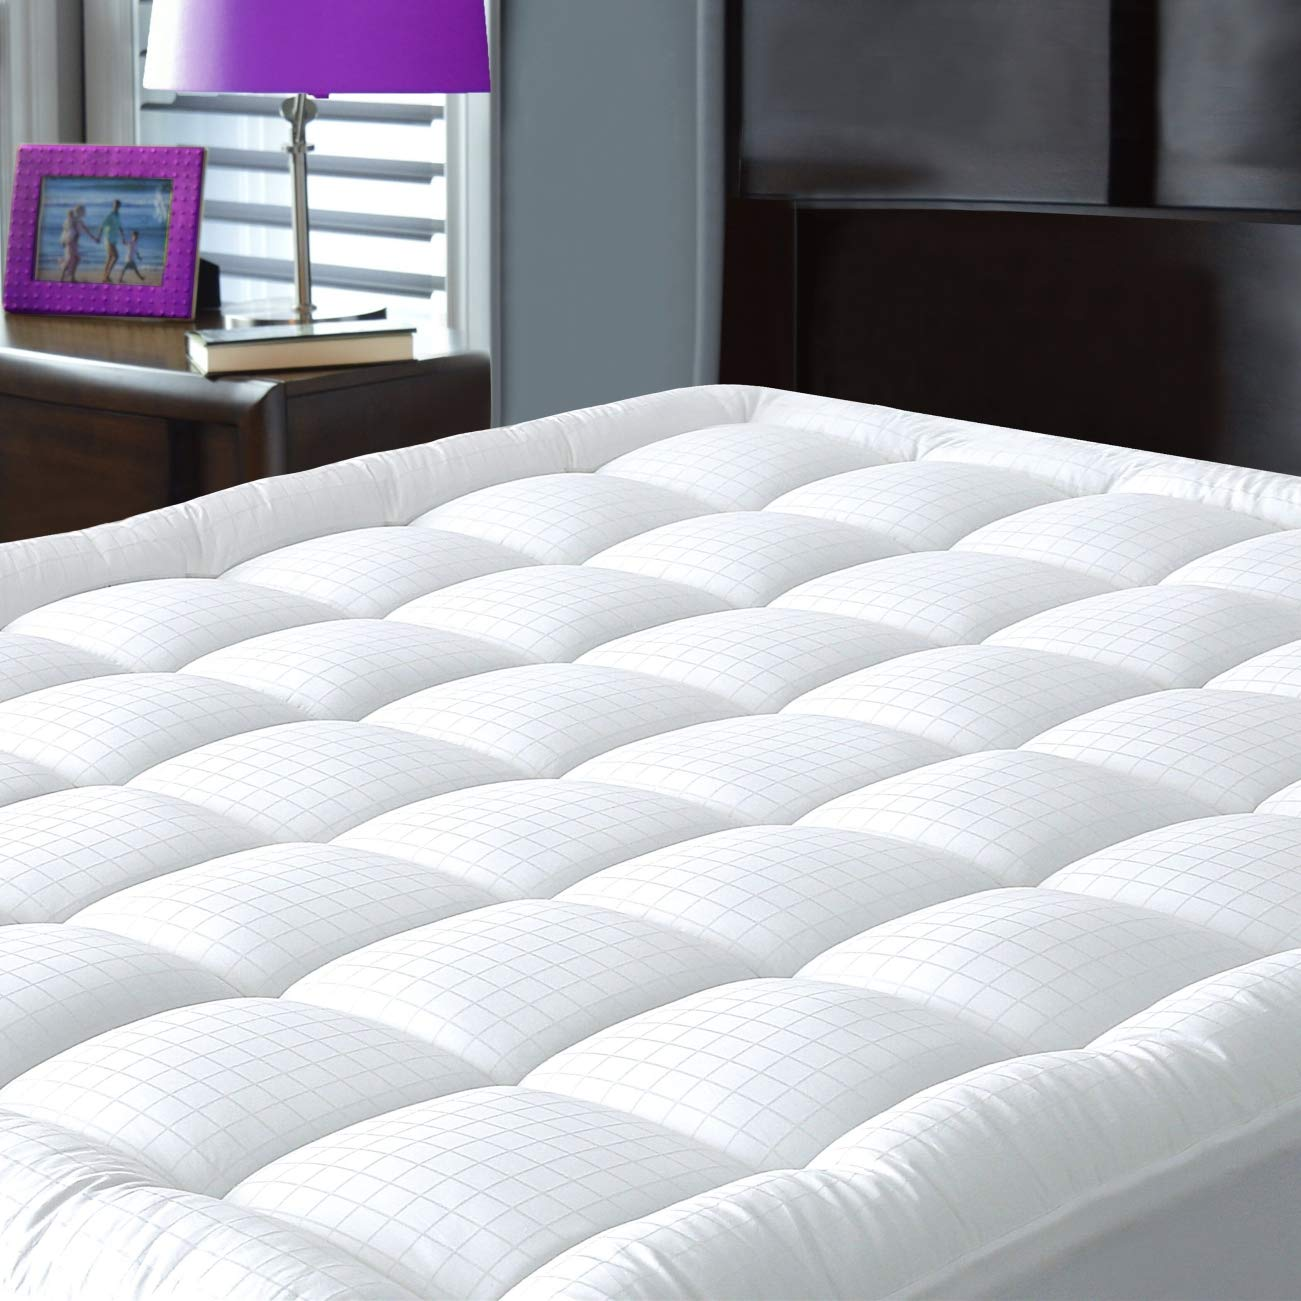 JURLYNE Pillowtop Mattress Pad Cover Full Size - Hypoallergenic - Cotton Top Down Alternative Filled Mattress Topper